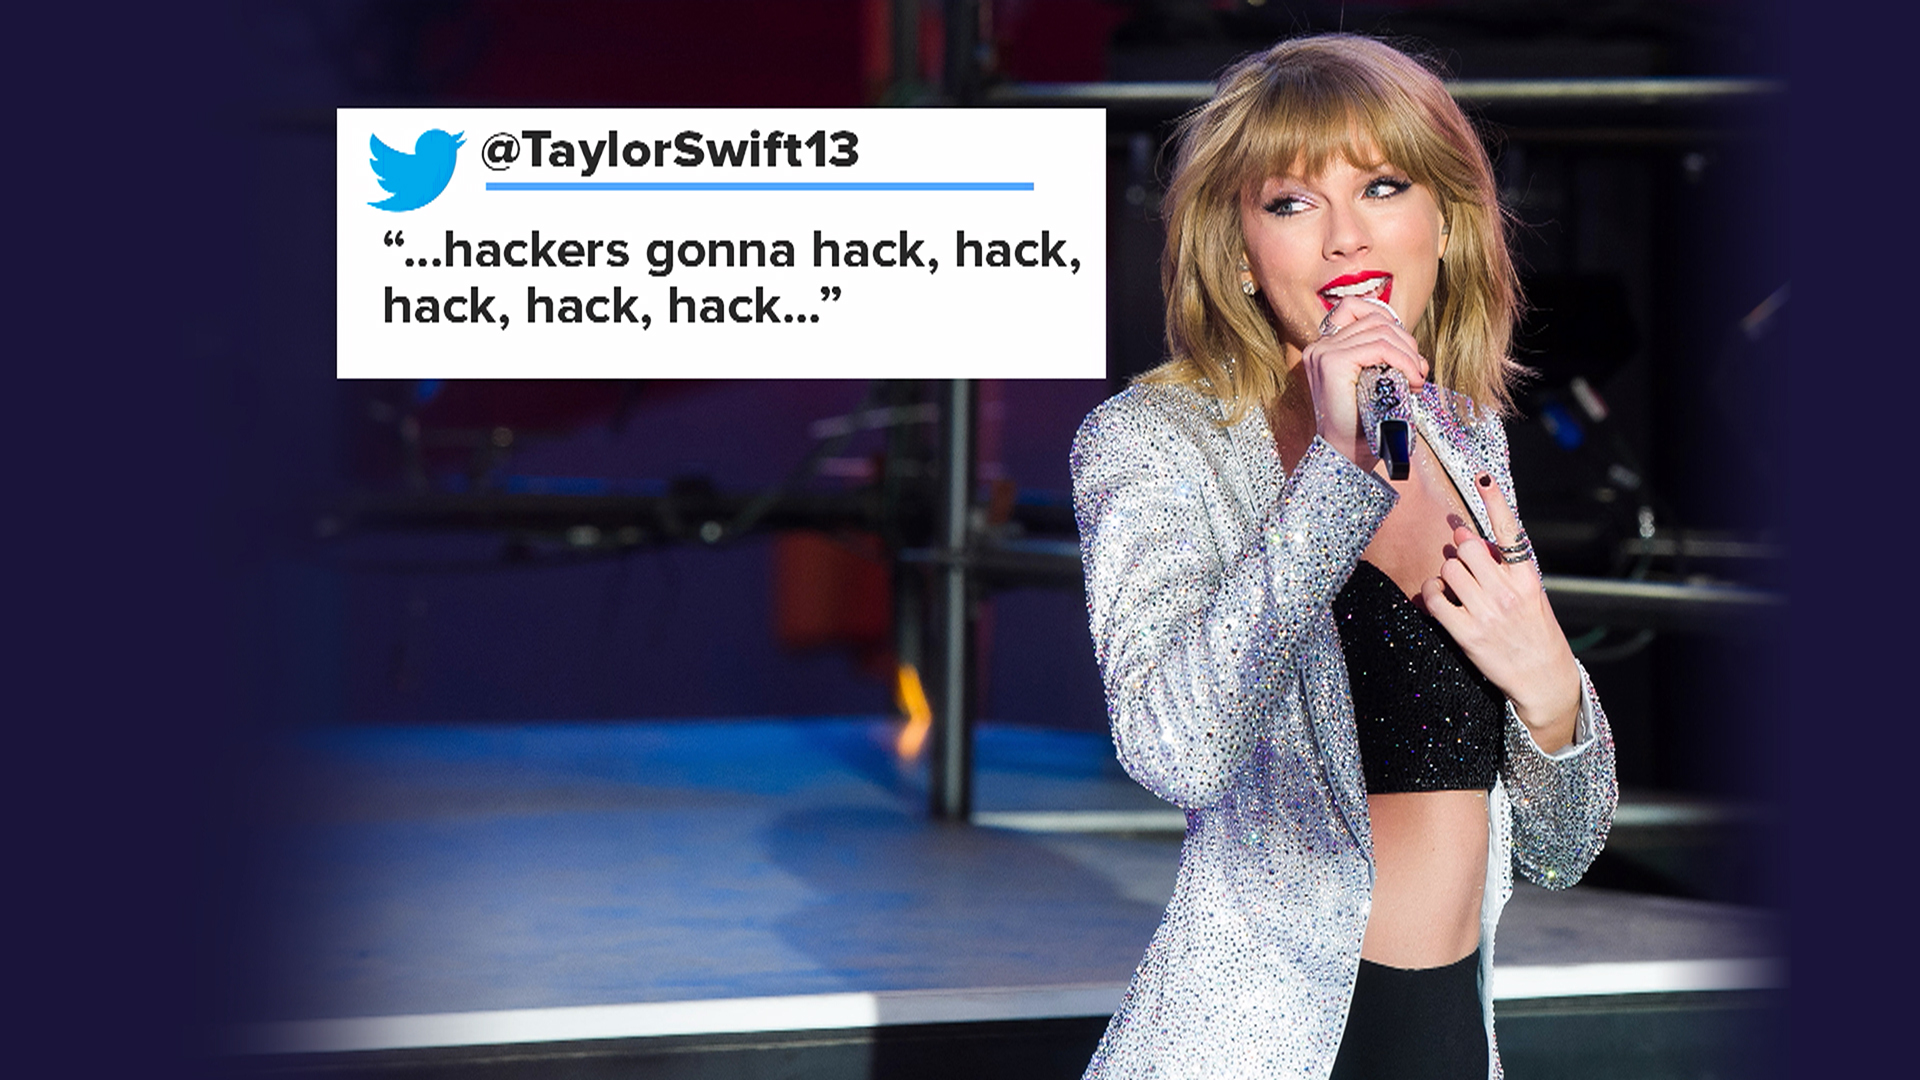 Hackers Gonna Hack Taylor Swift S Social Media Hijacked